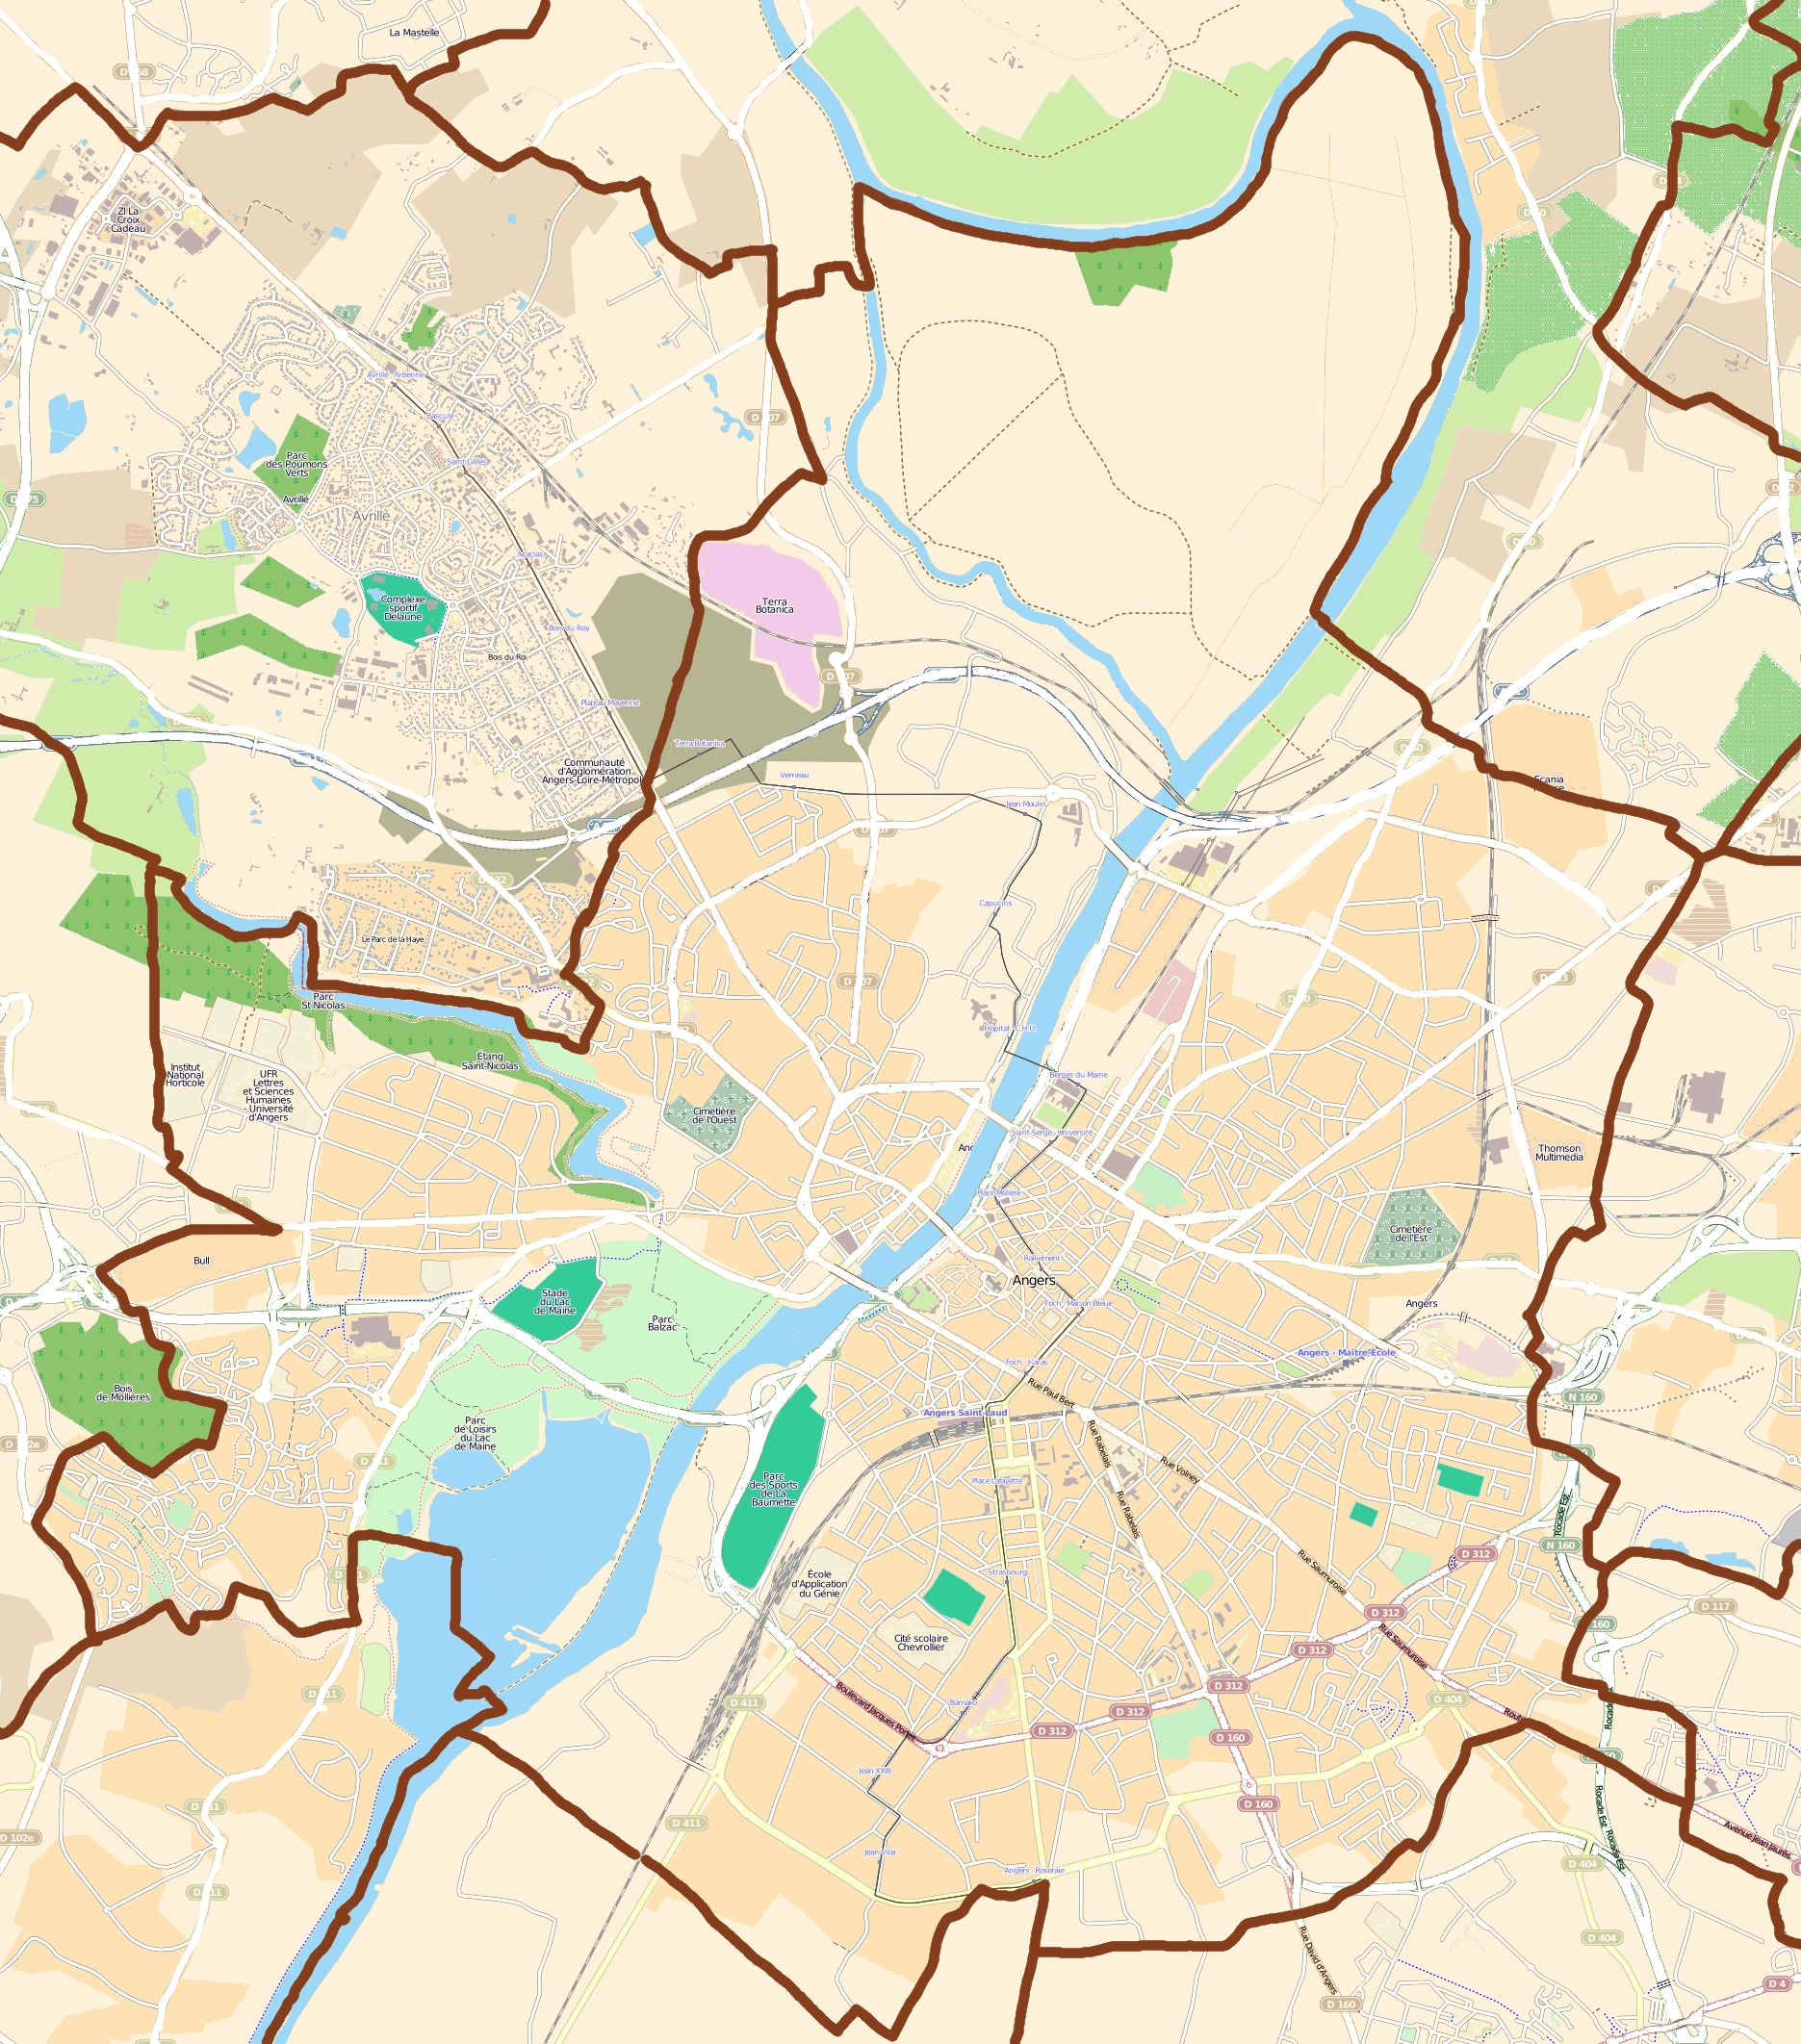 FileMap Angersjpg Wikimedia Commons